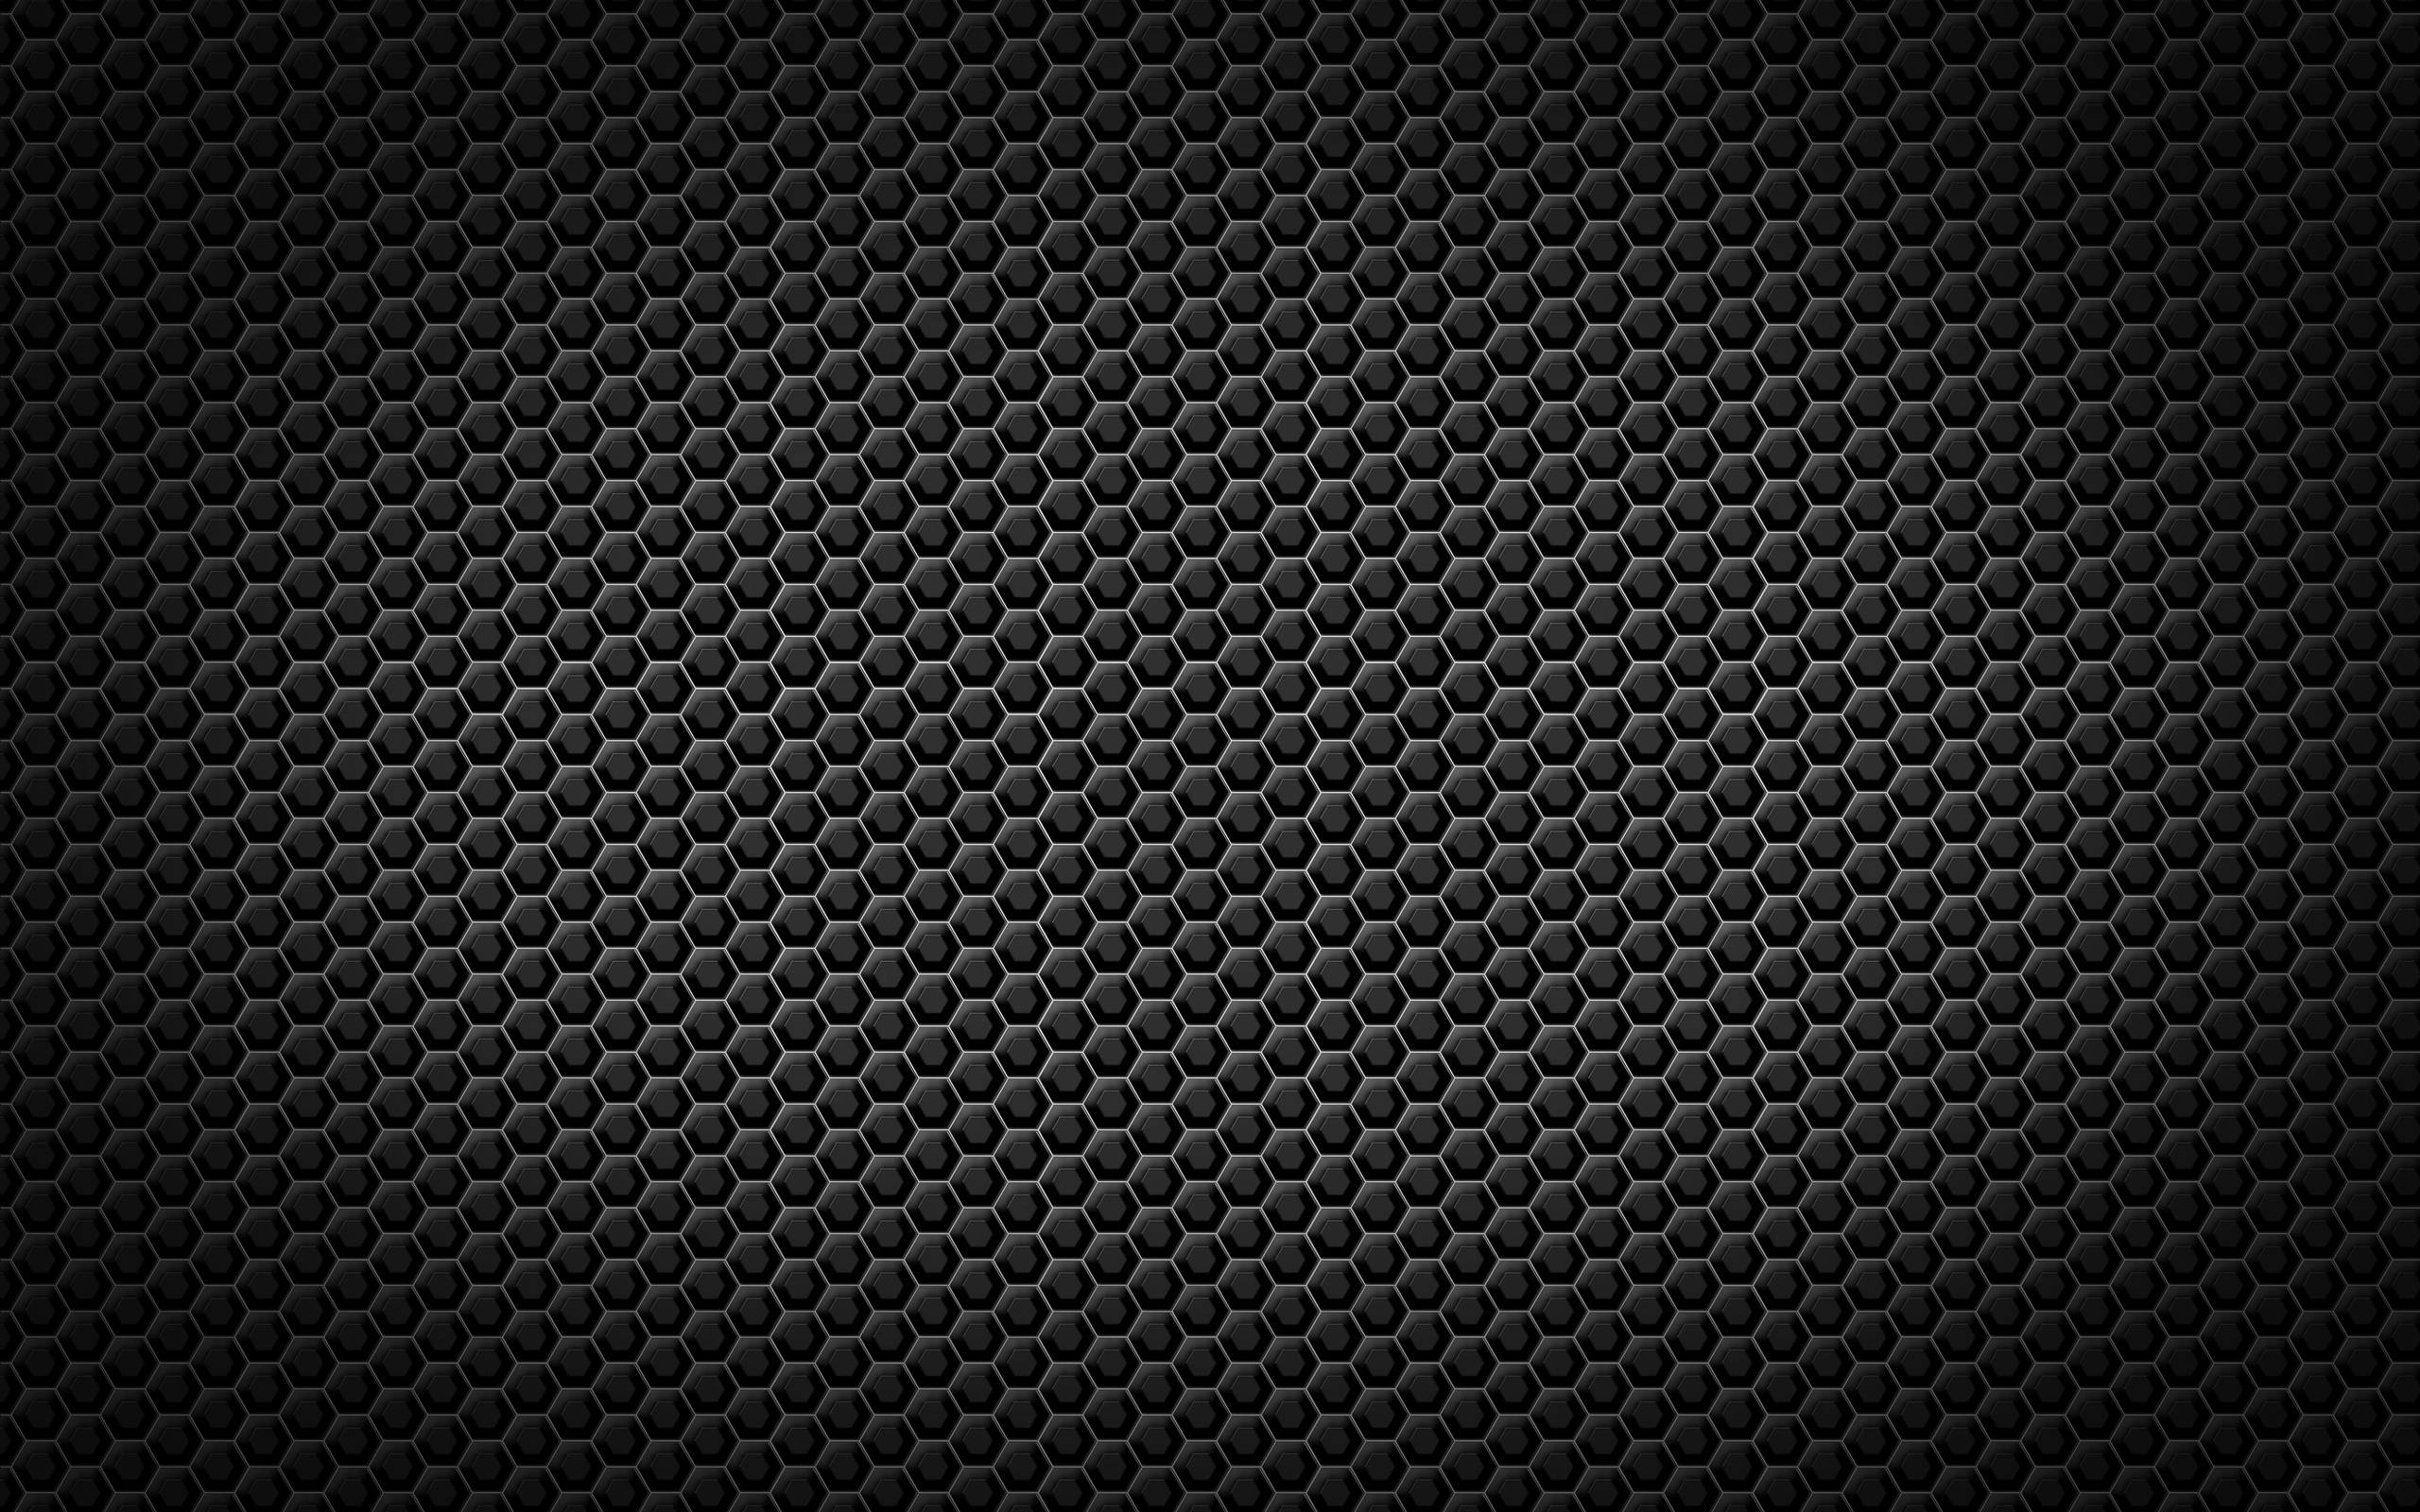 Pattern Wallpapers - Full HD wallpaper search